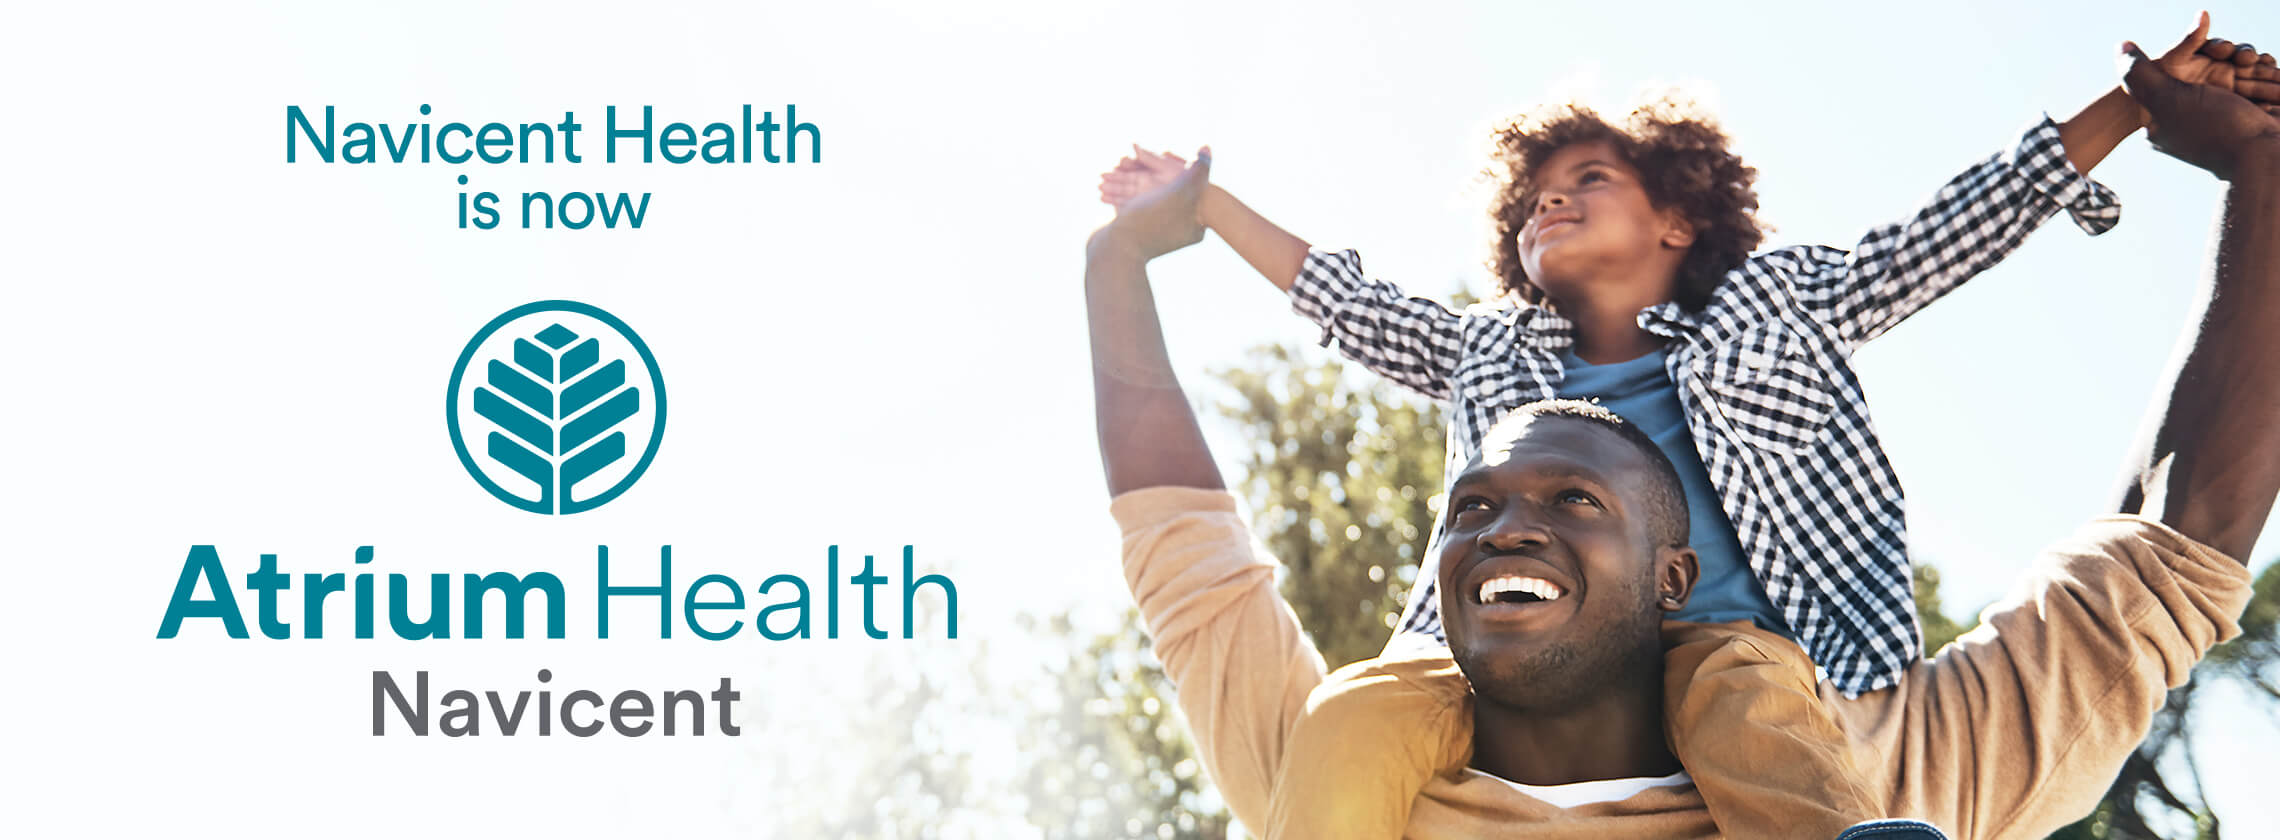 Navicent Health is now Atrium Health Navicent.